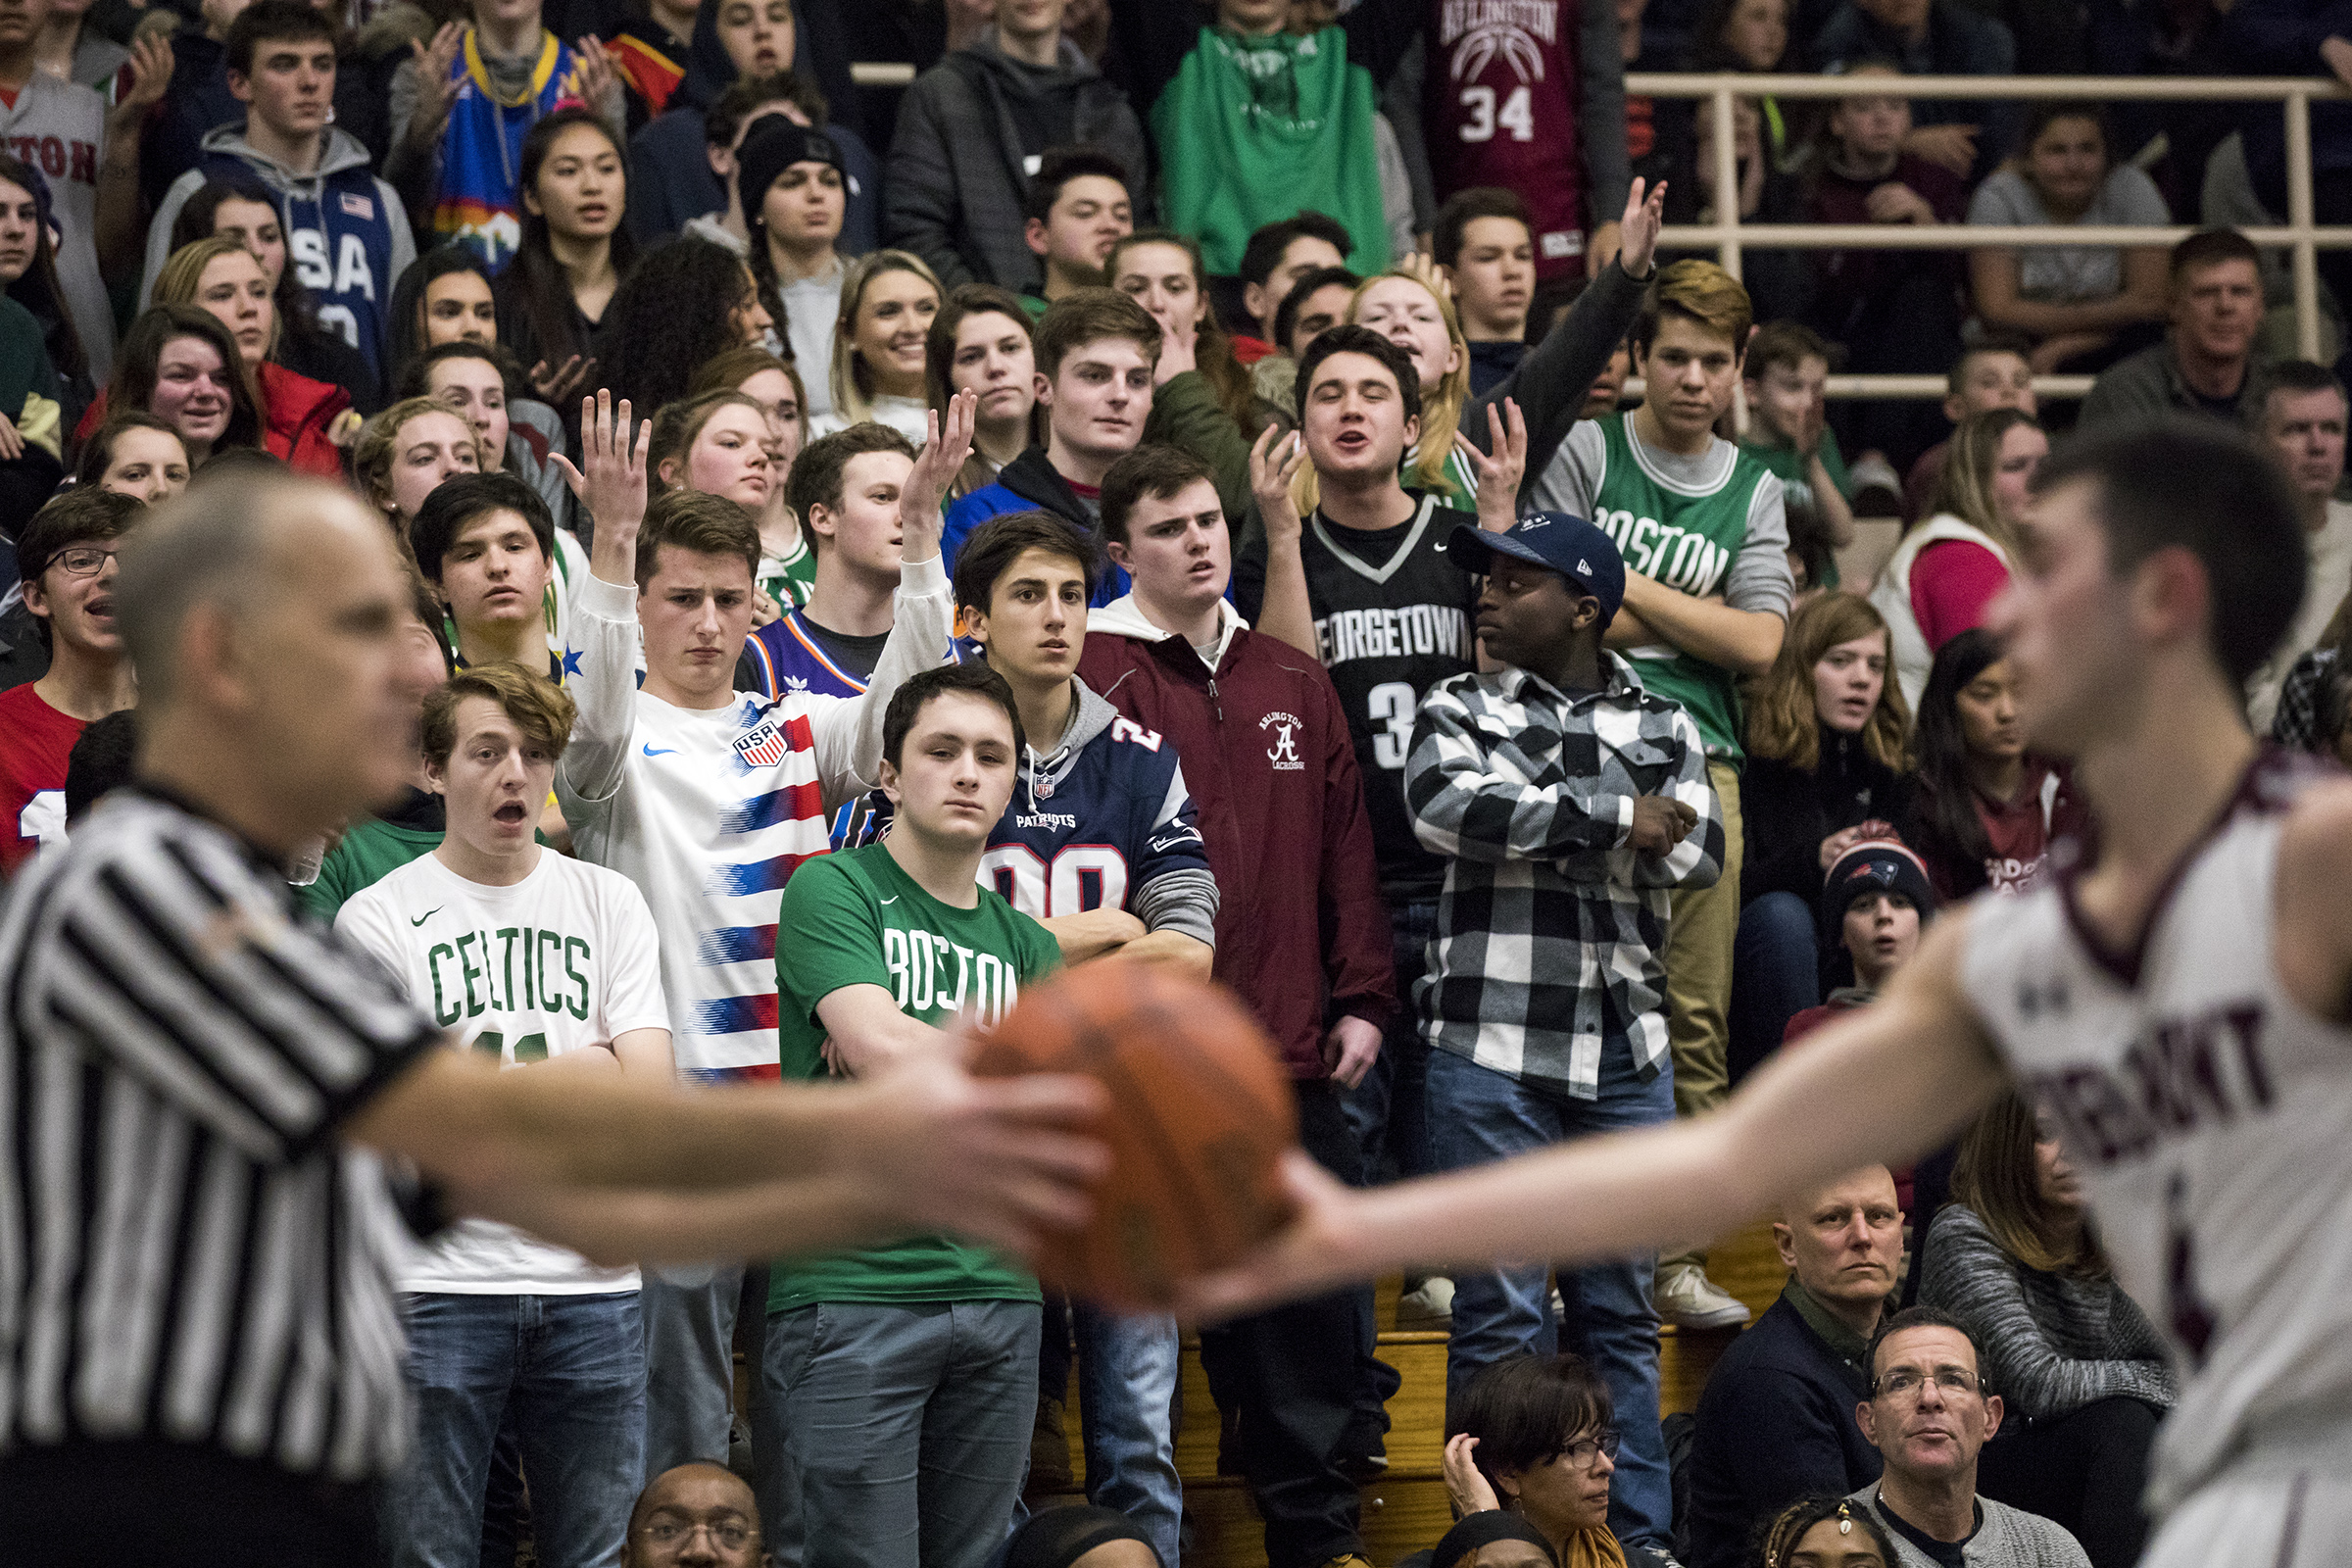 Arlington fans react after the ball is turned over to Belmont during the game in Belmont on Mar. 1, 2019.